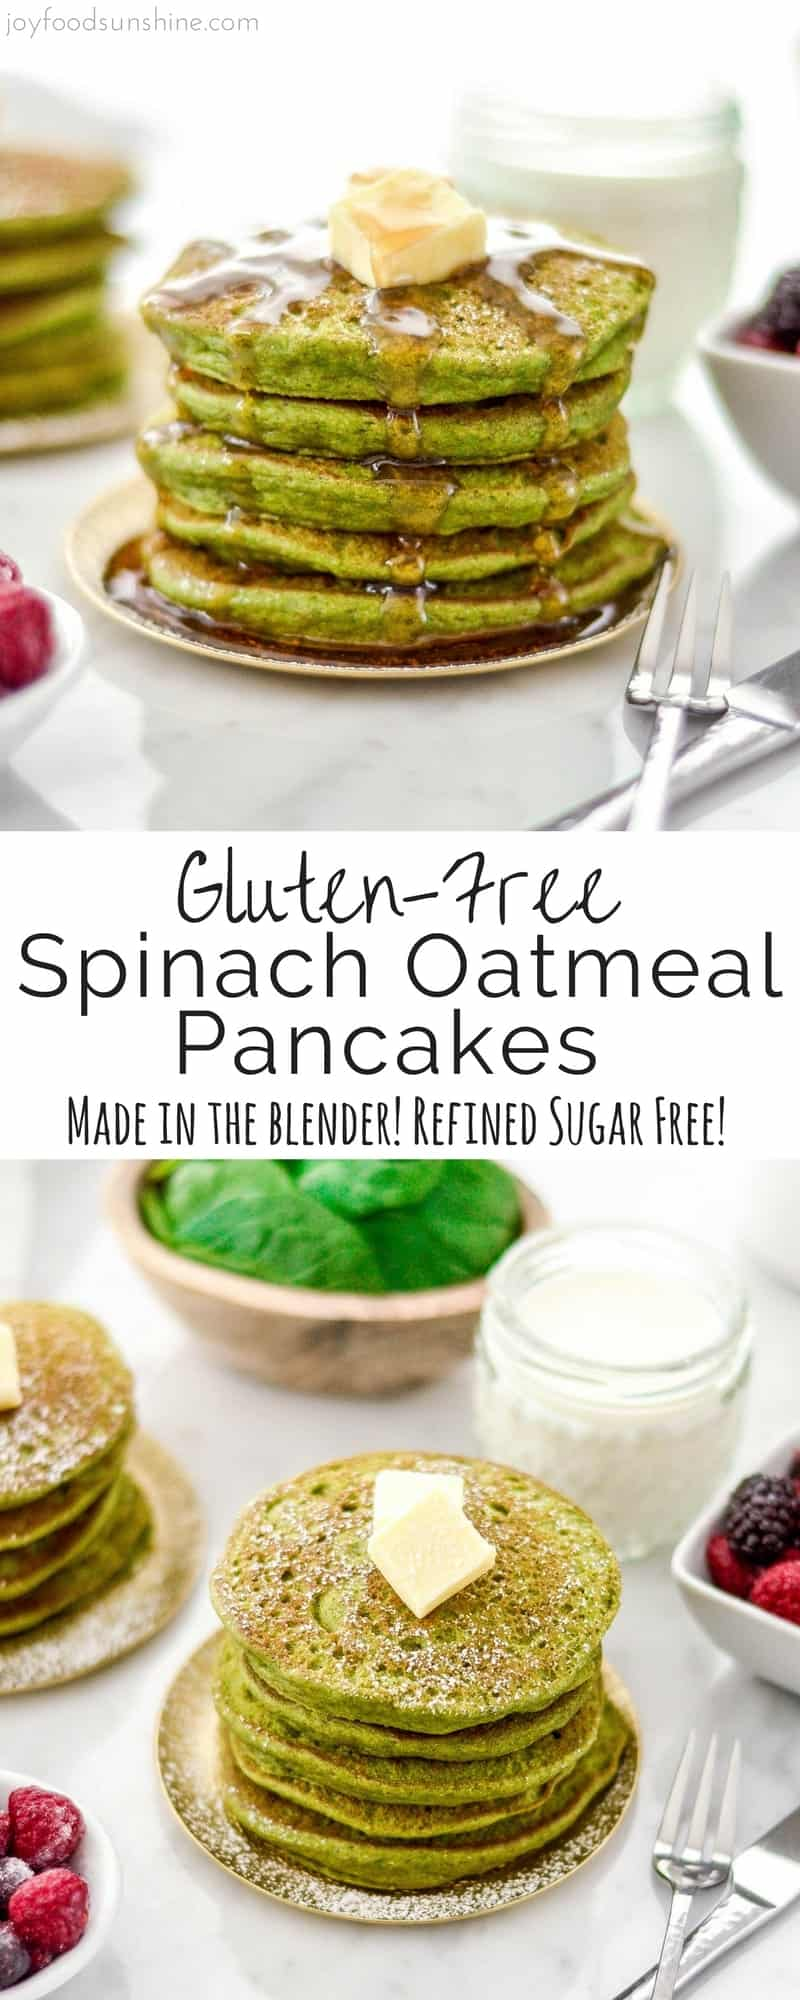 These Gluten-Free Spinach Oatmeal Pancakes are a fun, healthy breakfast recipe full of nutritious ingredients like spinach, oatmeal and Greek yogurt that your kids will love! They are made in the blender and are refined sugar free!